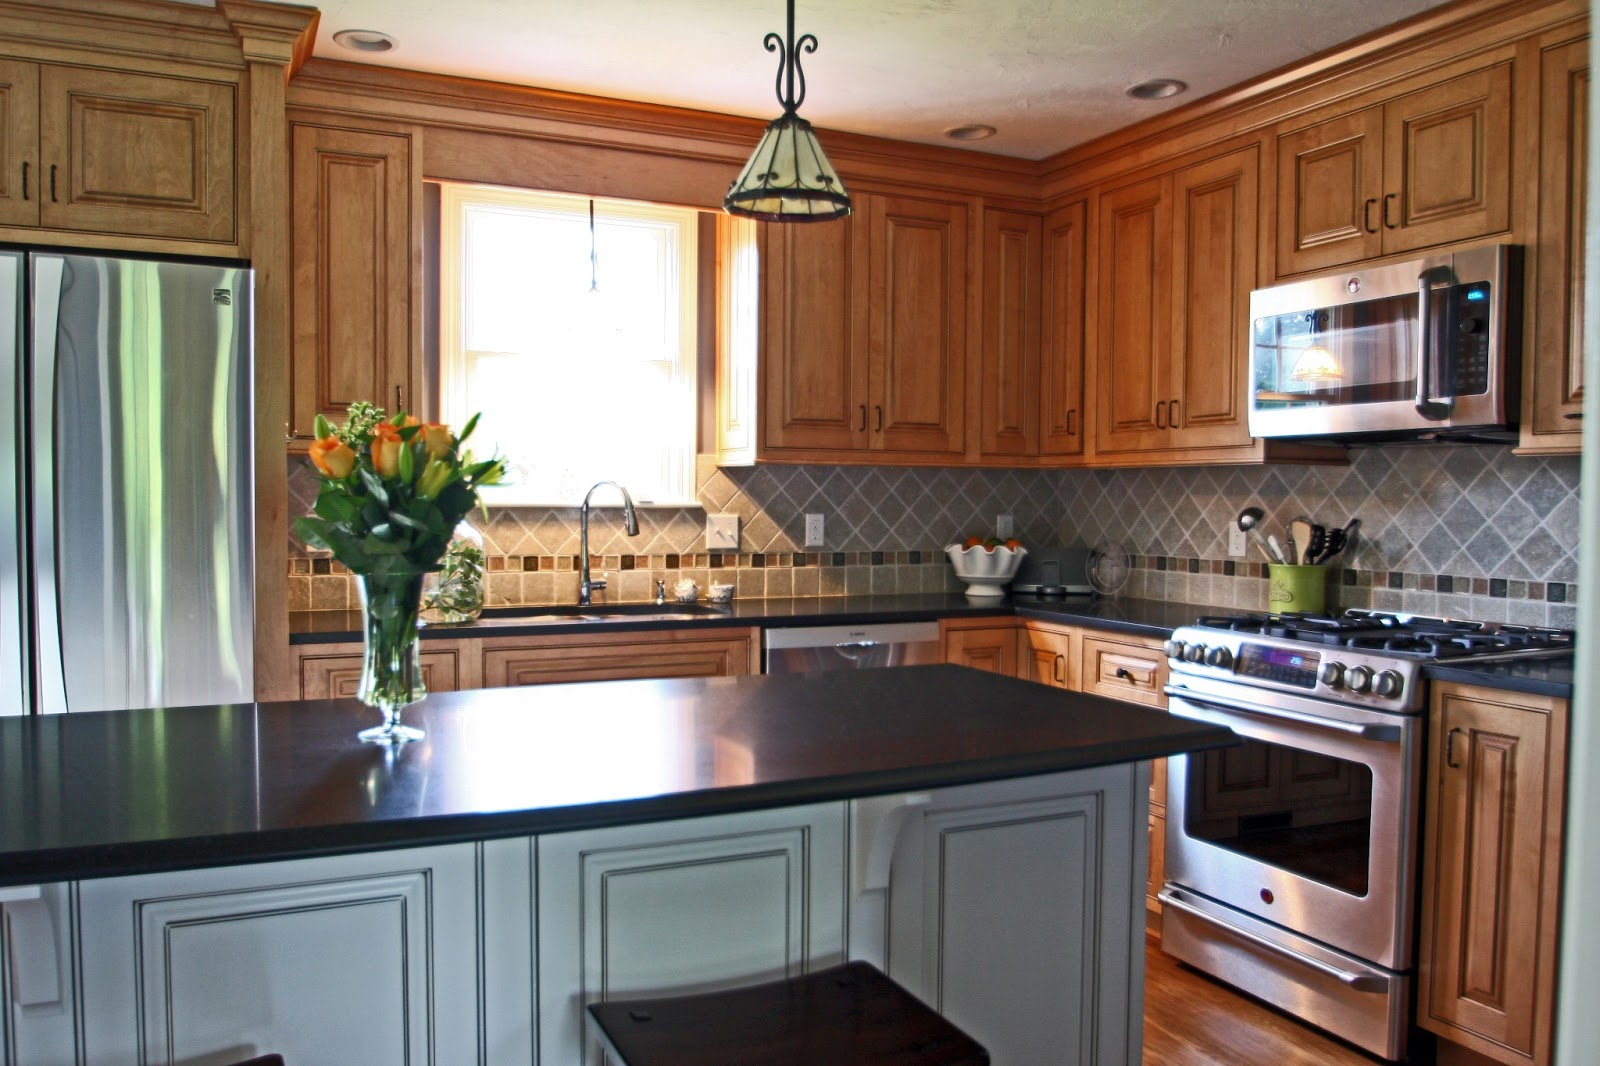 Kitchen Cabinets Clearance Kitchen Cabinet Systems Cabinet Clearance Kitchen Cabinet Discounts